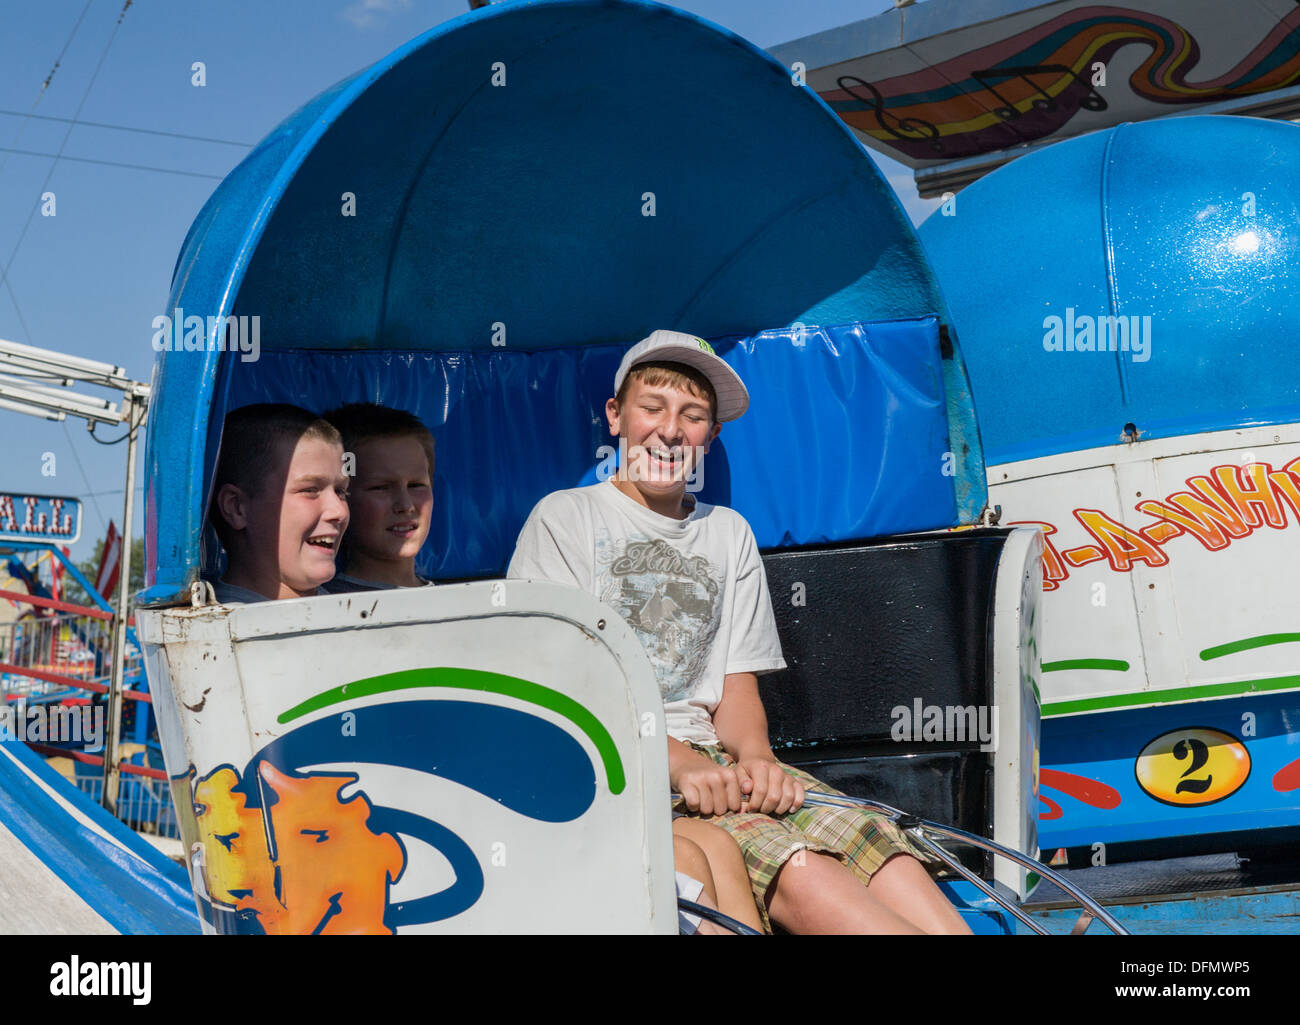 Boys on Tilt-a-Whirl ride, Great New York State Fair. - Stock Image